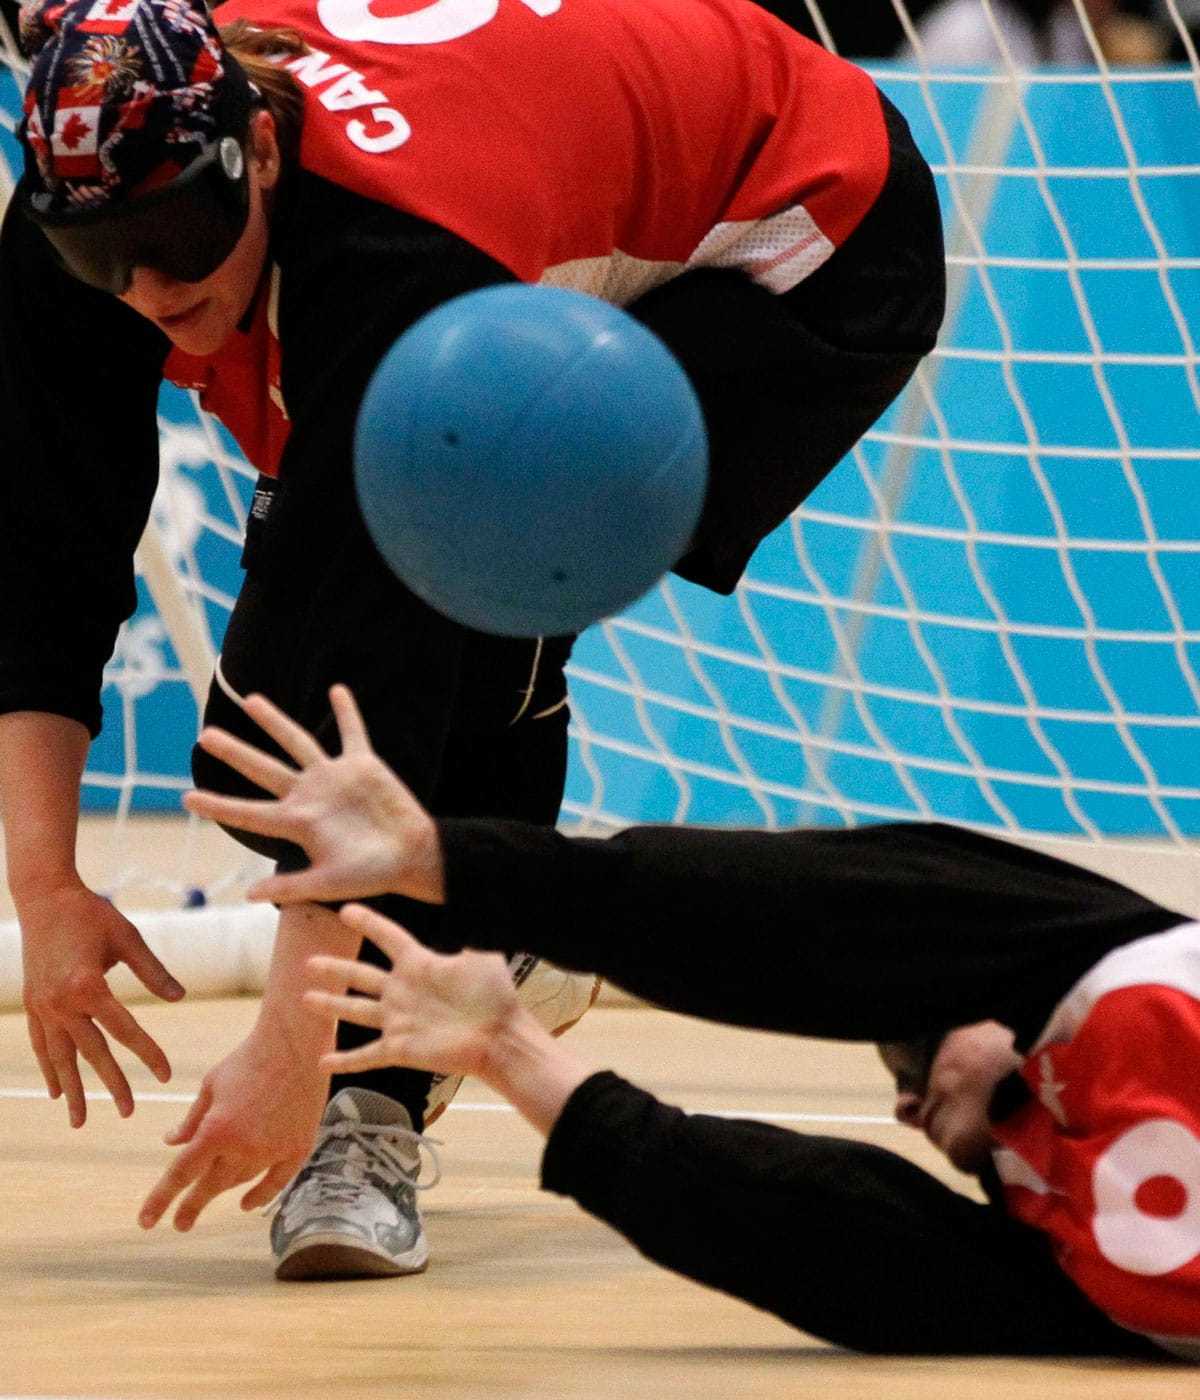 Goalball athletes facing challenges to keep funding